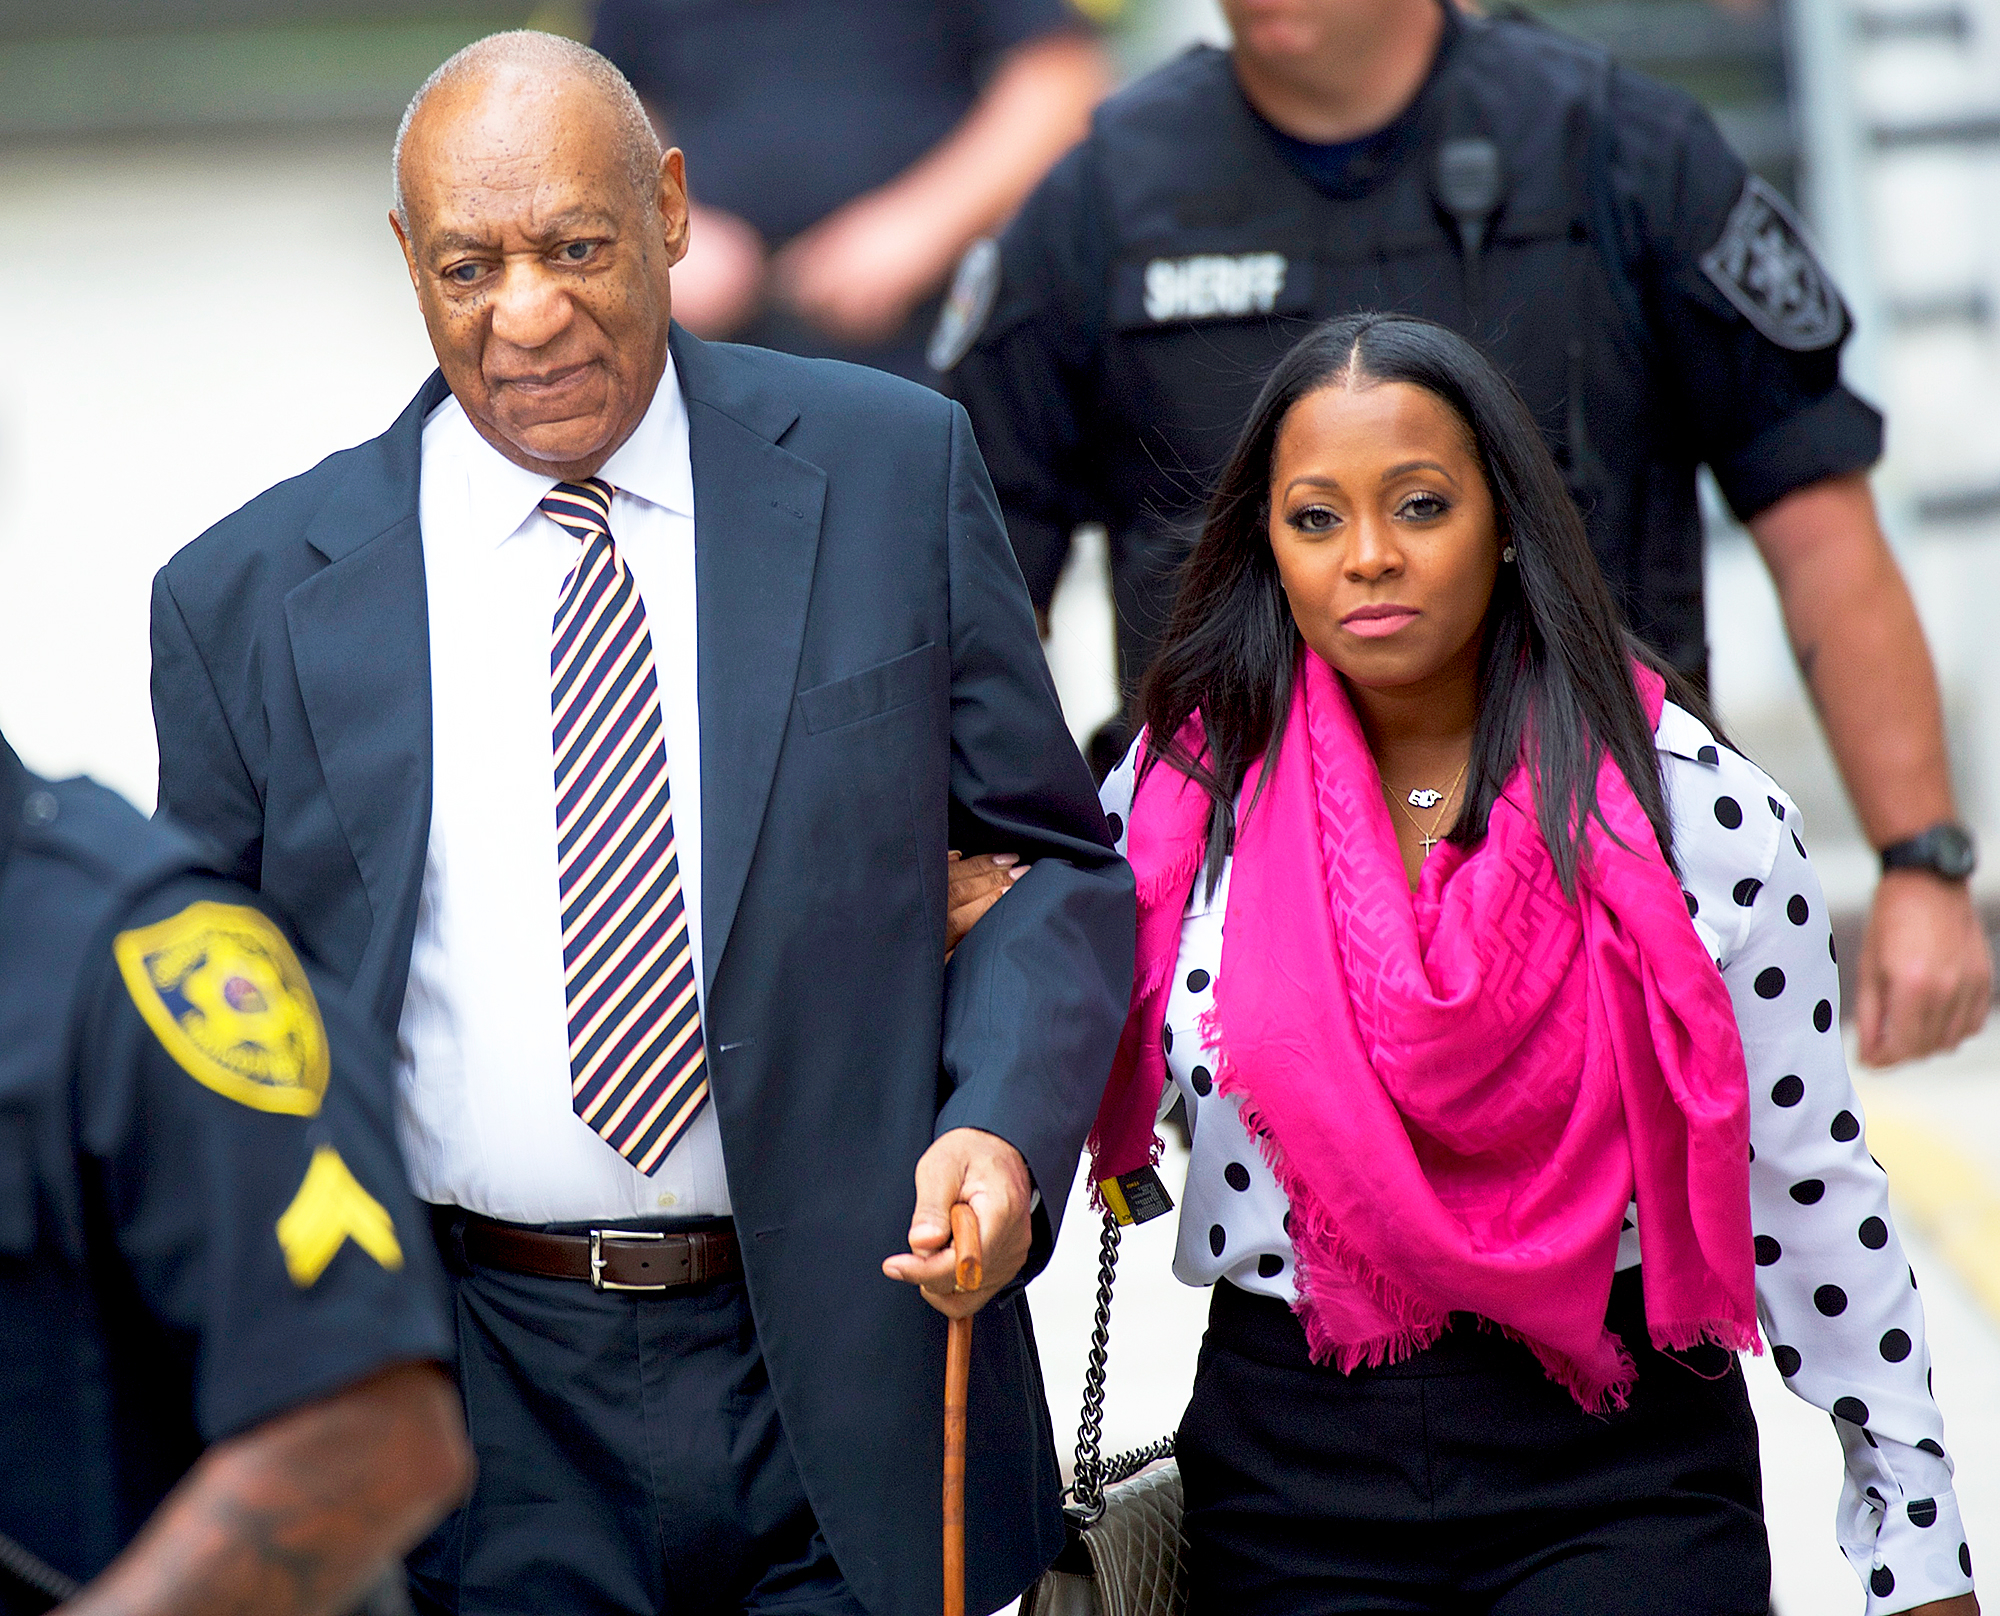 Keshia Knight Pulliam Defends Support for Billy Cosby